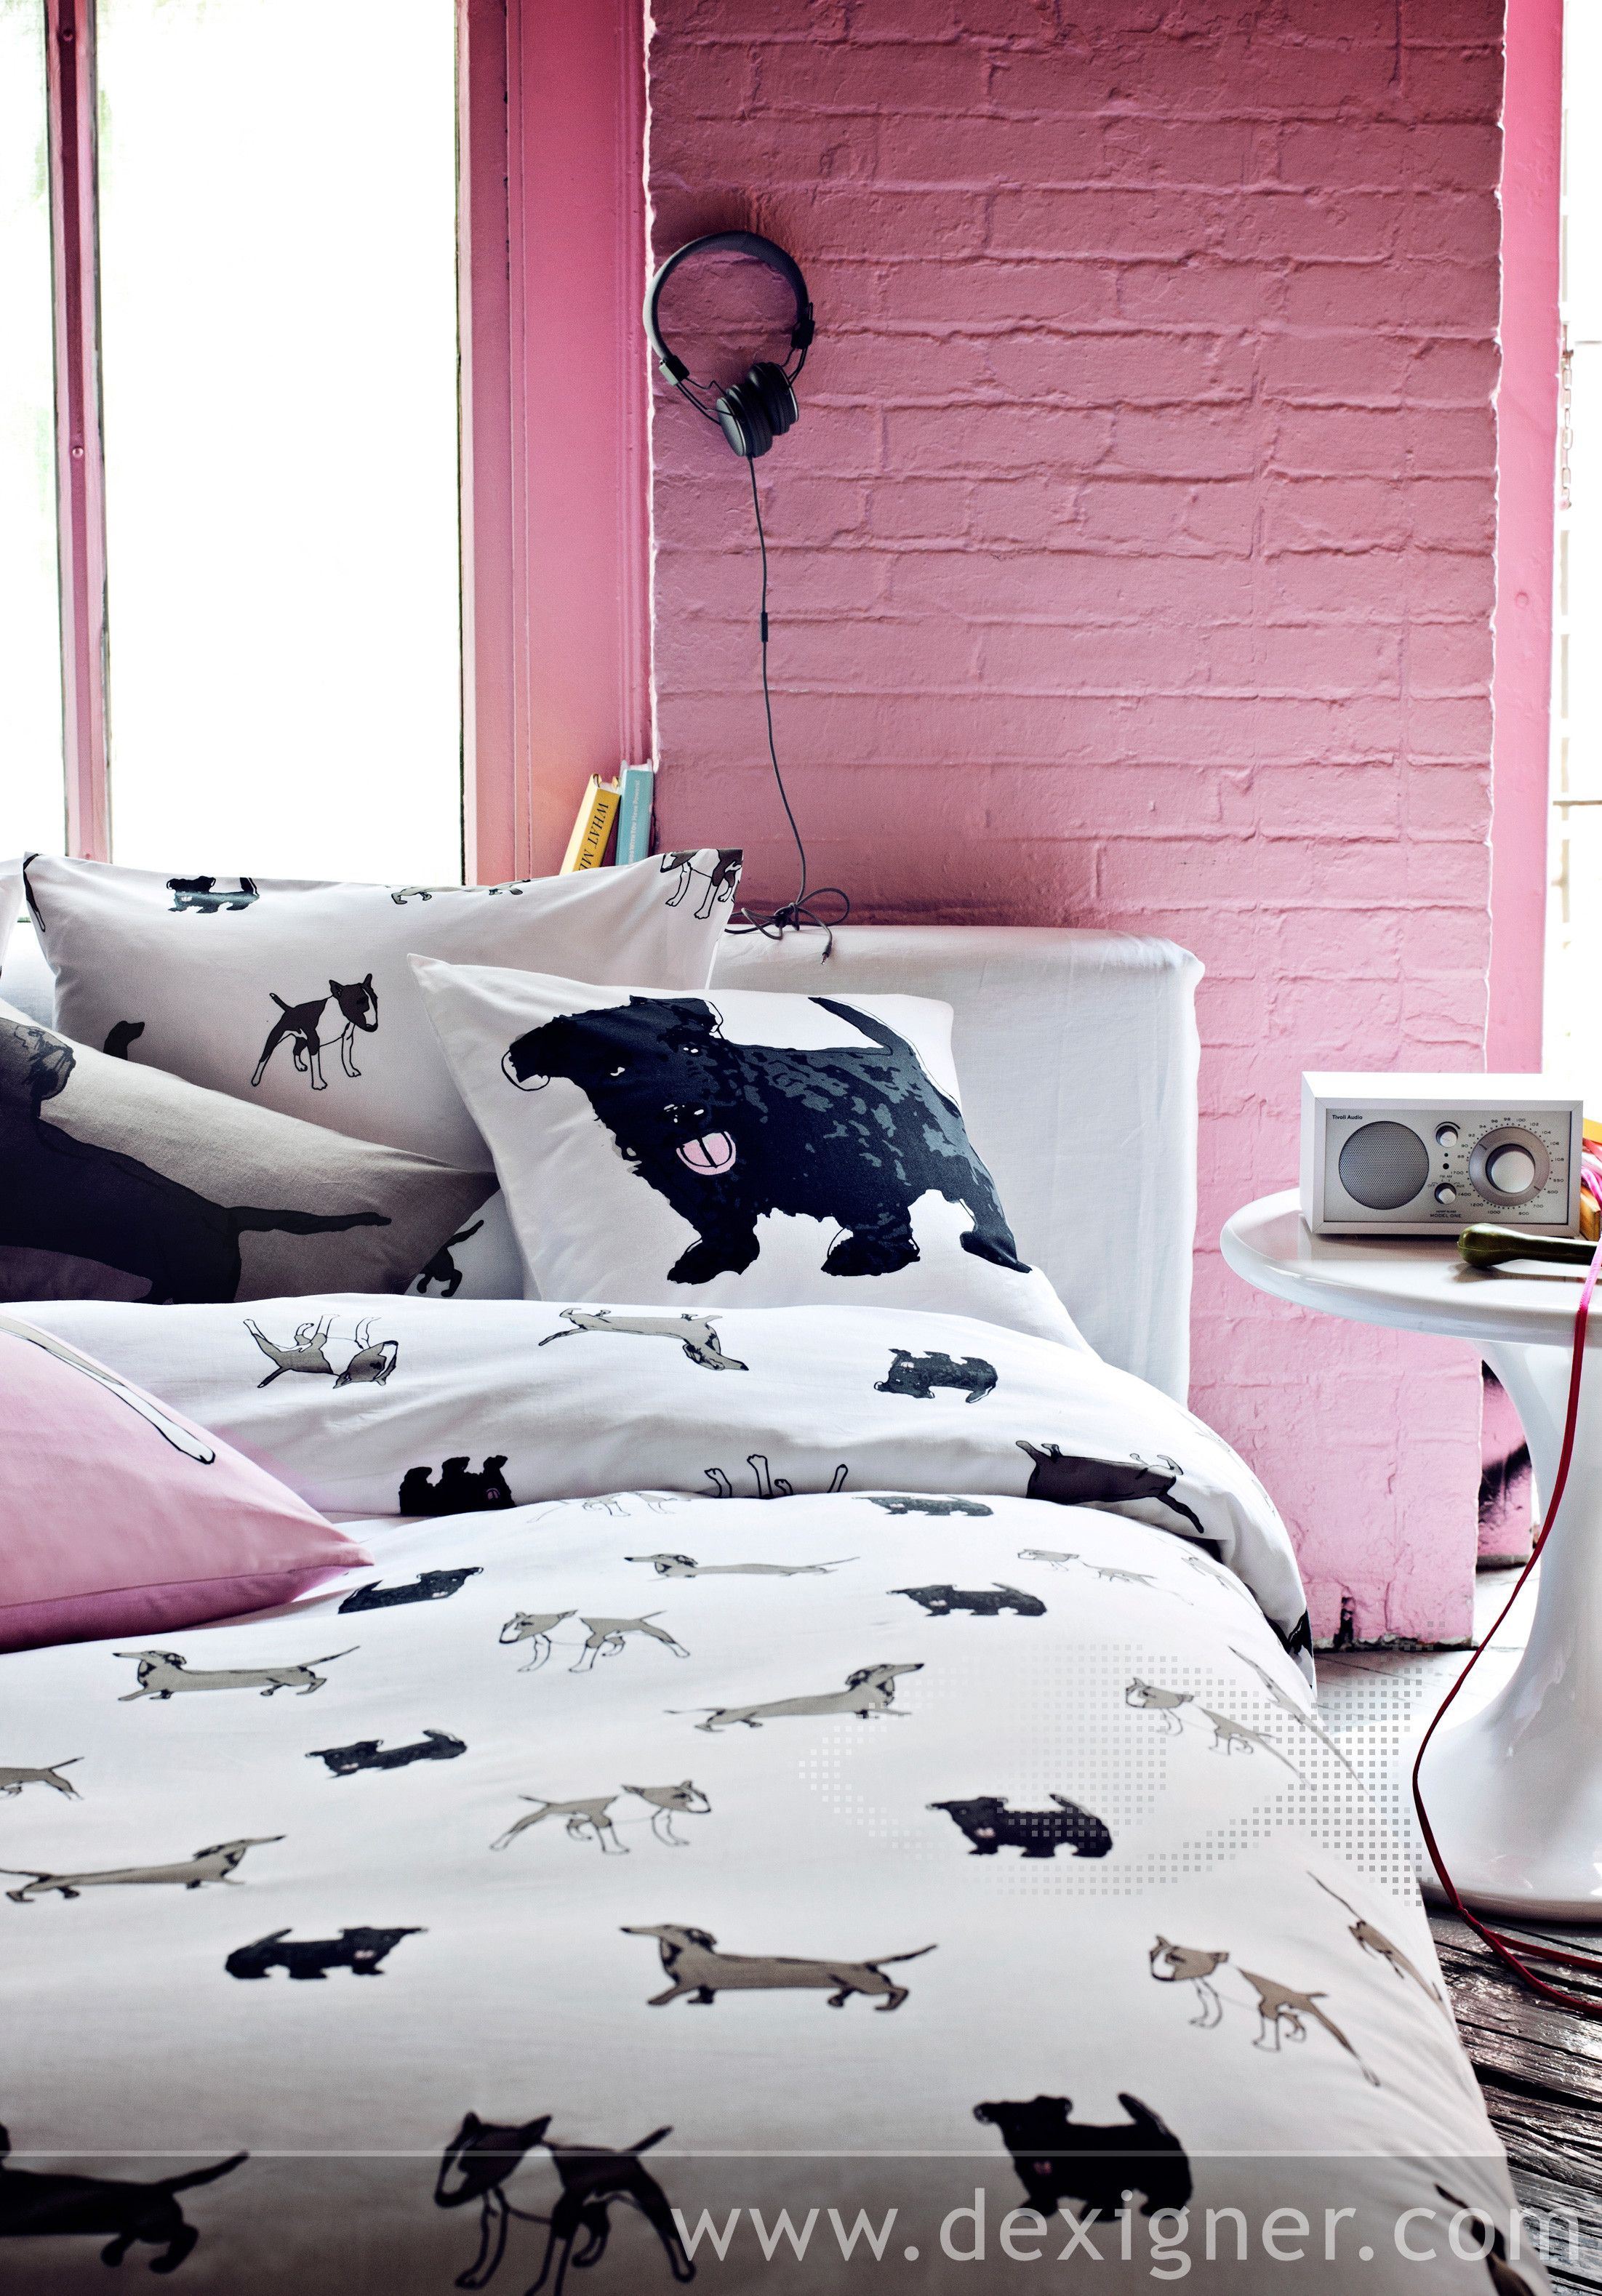 Exciting Contrasts Set The Tone For Autumn With H M Home Dog Bedroom Decor Puppy Bedroom Puppy Bedroom Ideas